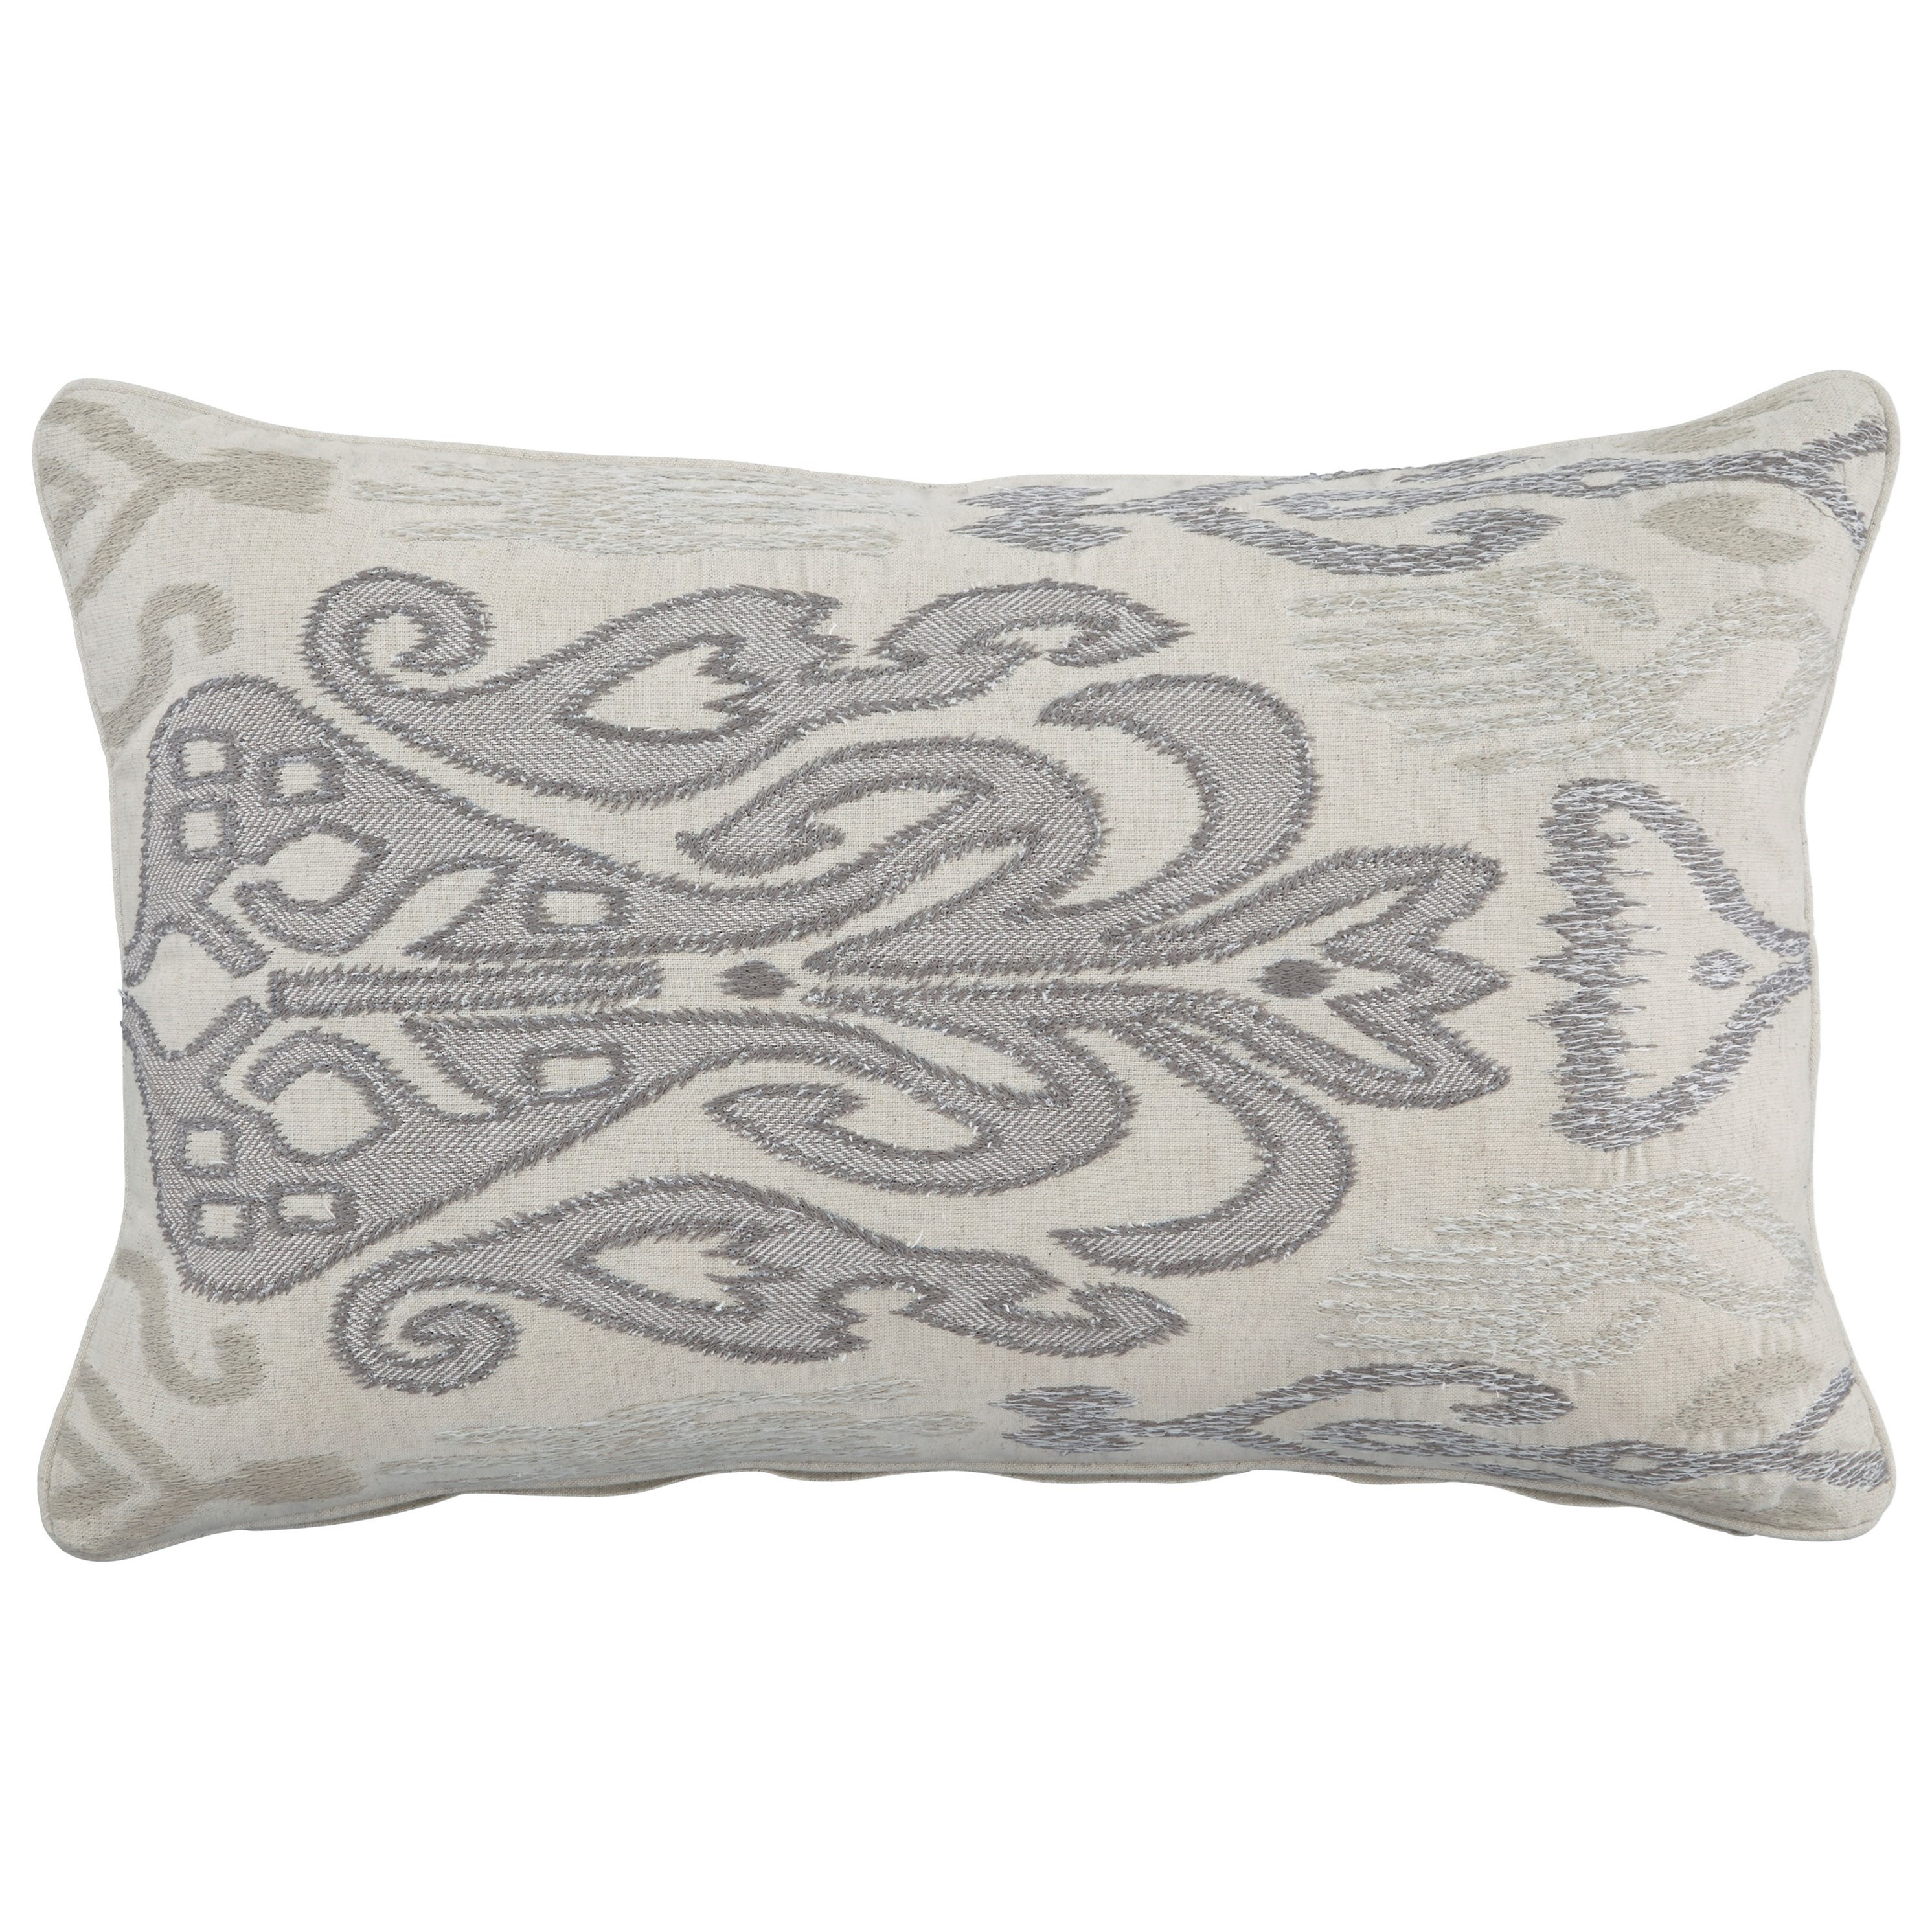 Signature Design by Ashley Pillows Orono Natural Pillow - Item Number: A1000662P